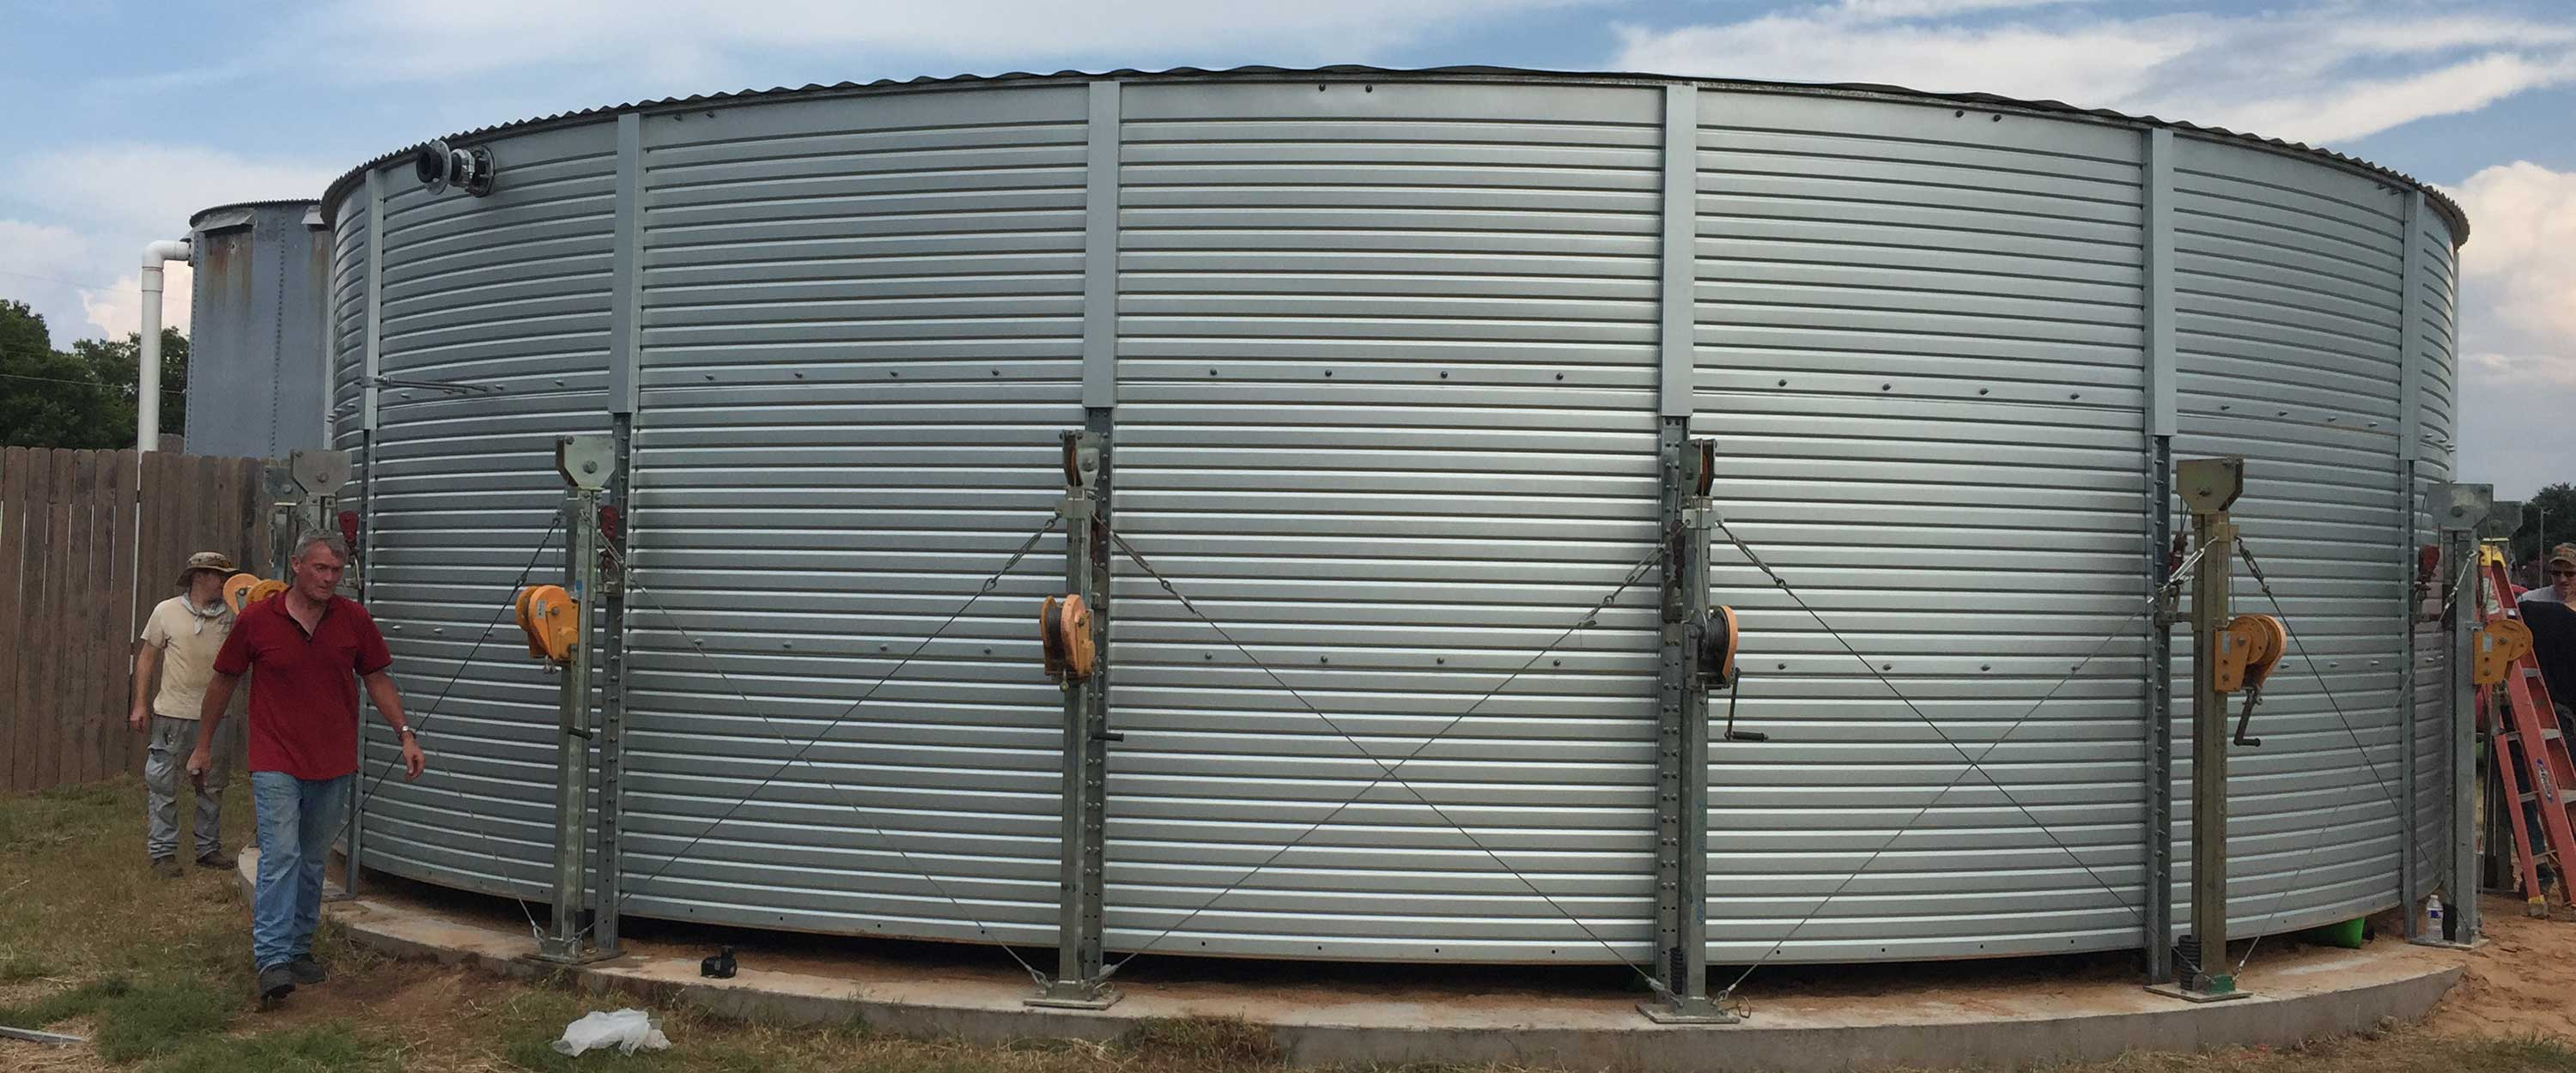 Water storage tank installations